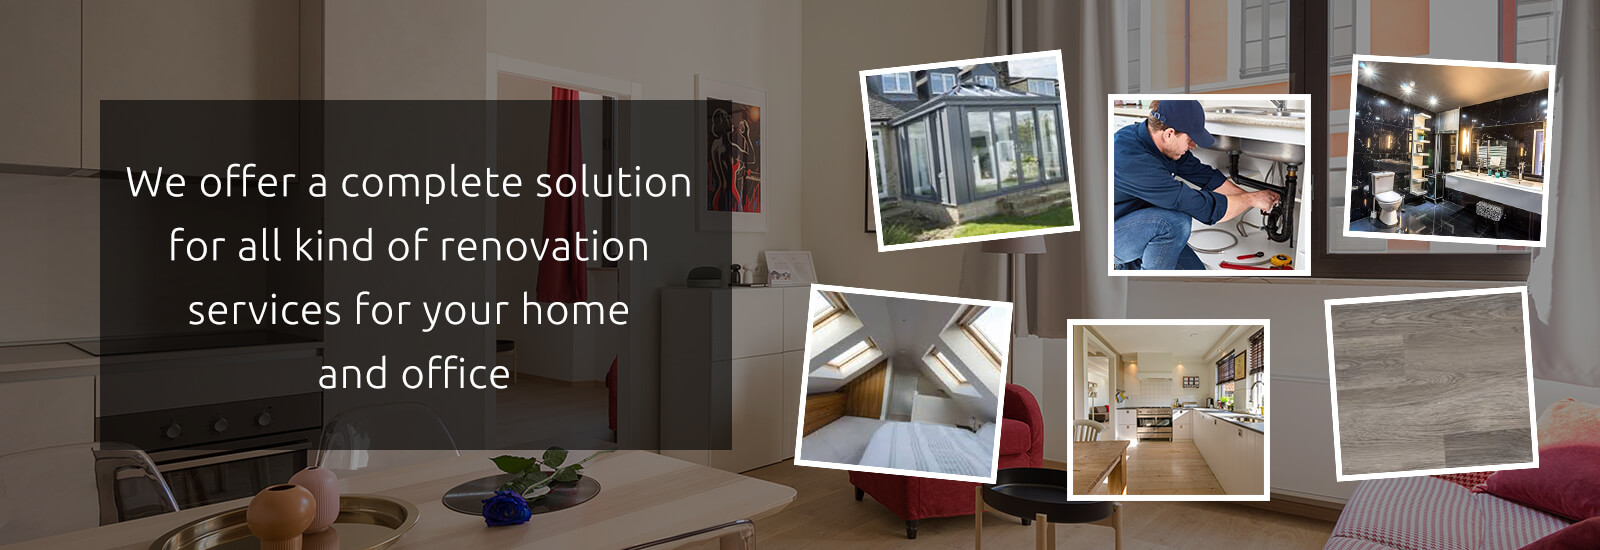 Construction and Renovation Services at Sunny Builders, Leicester, United Kingdom